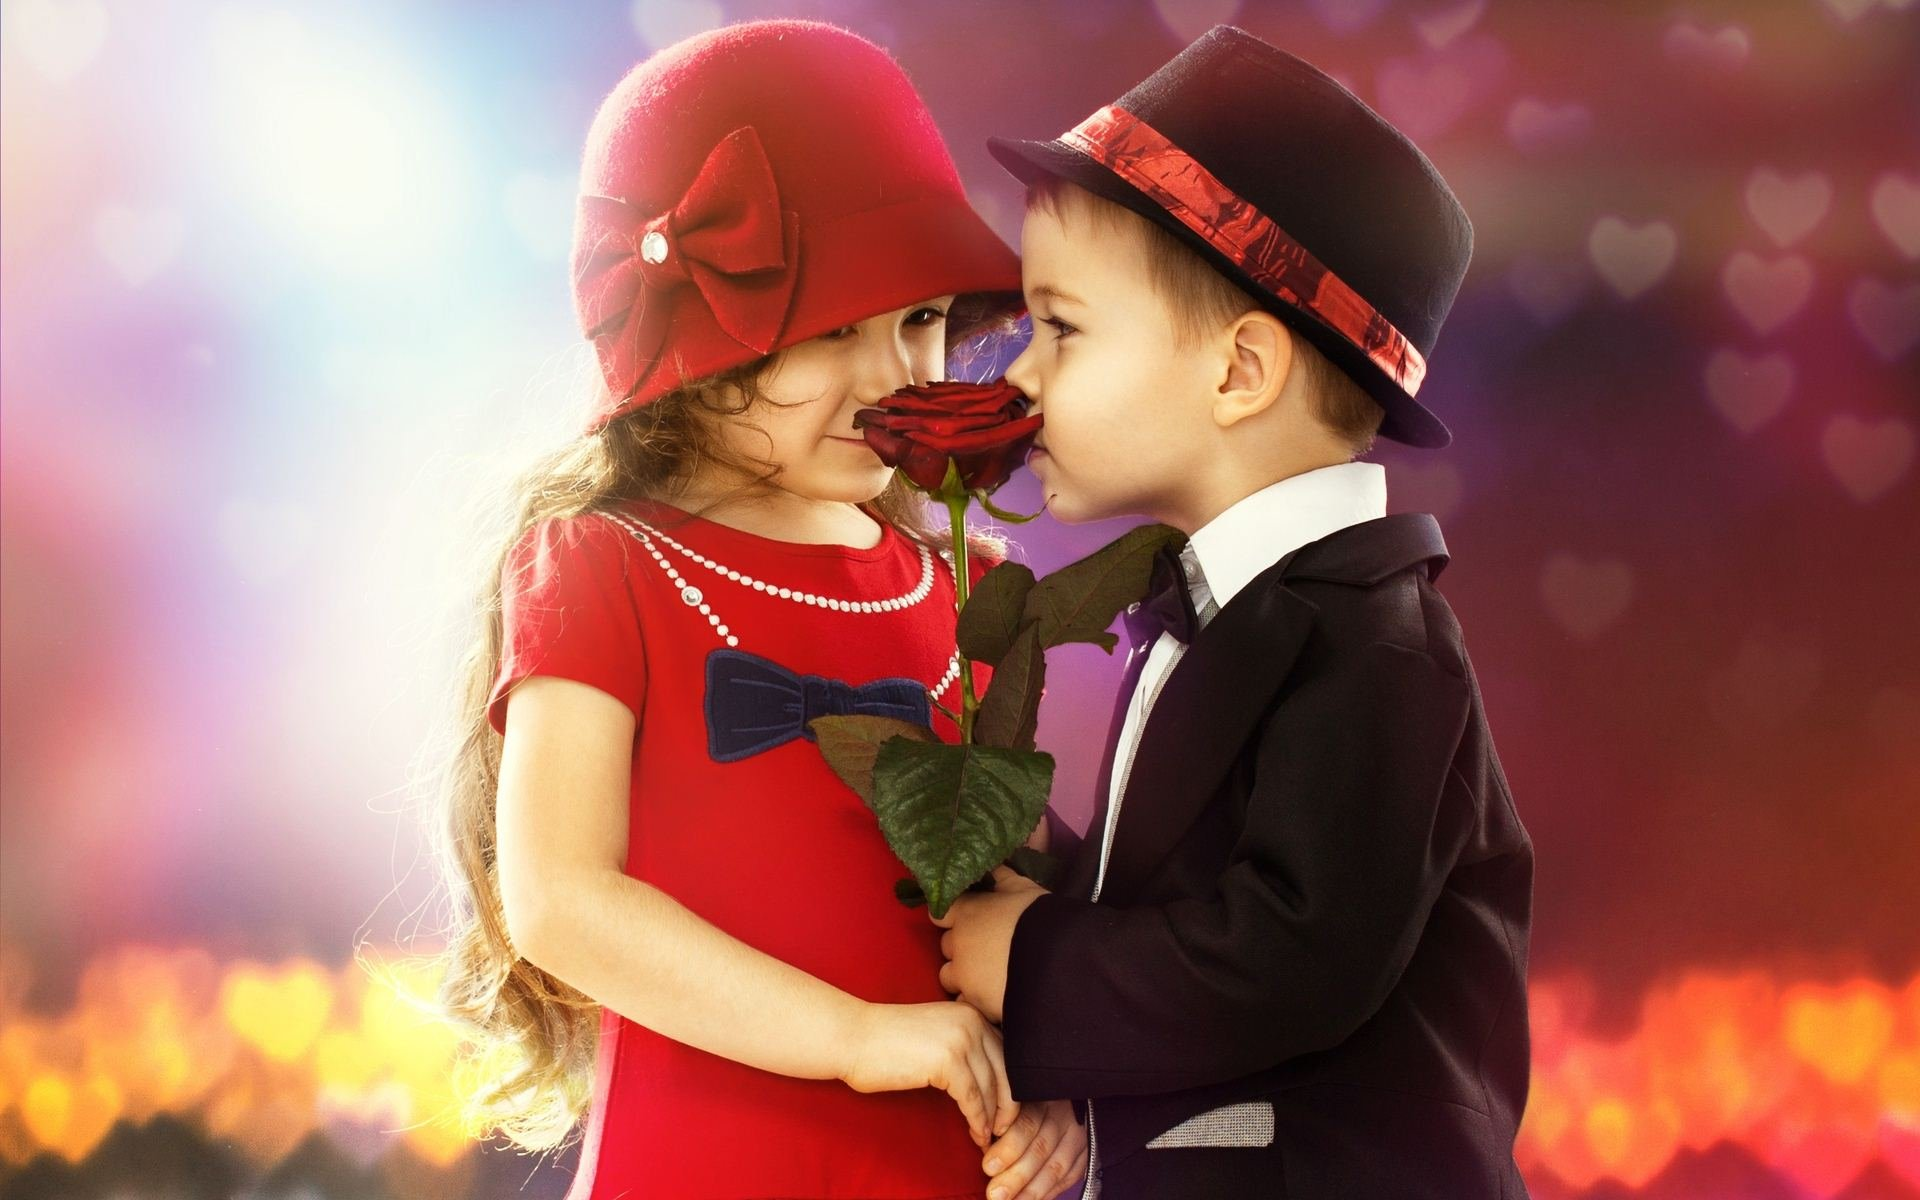 Girl And Boy Love Desktop Wallpaper : KISS - cute child couple boy girl rouse wallpaper 1920x1200 701856 WallpaperUP